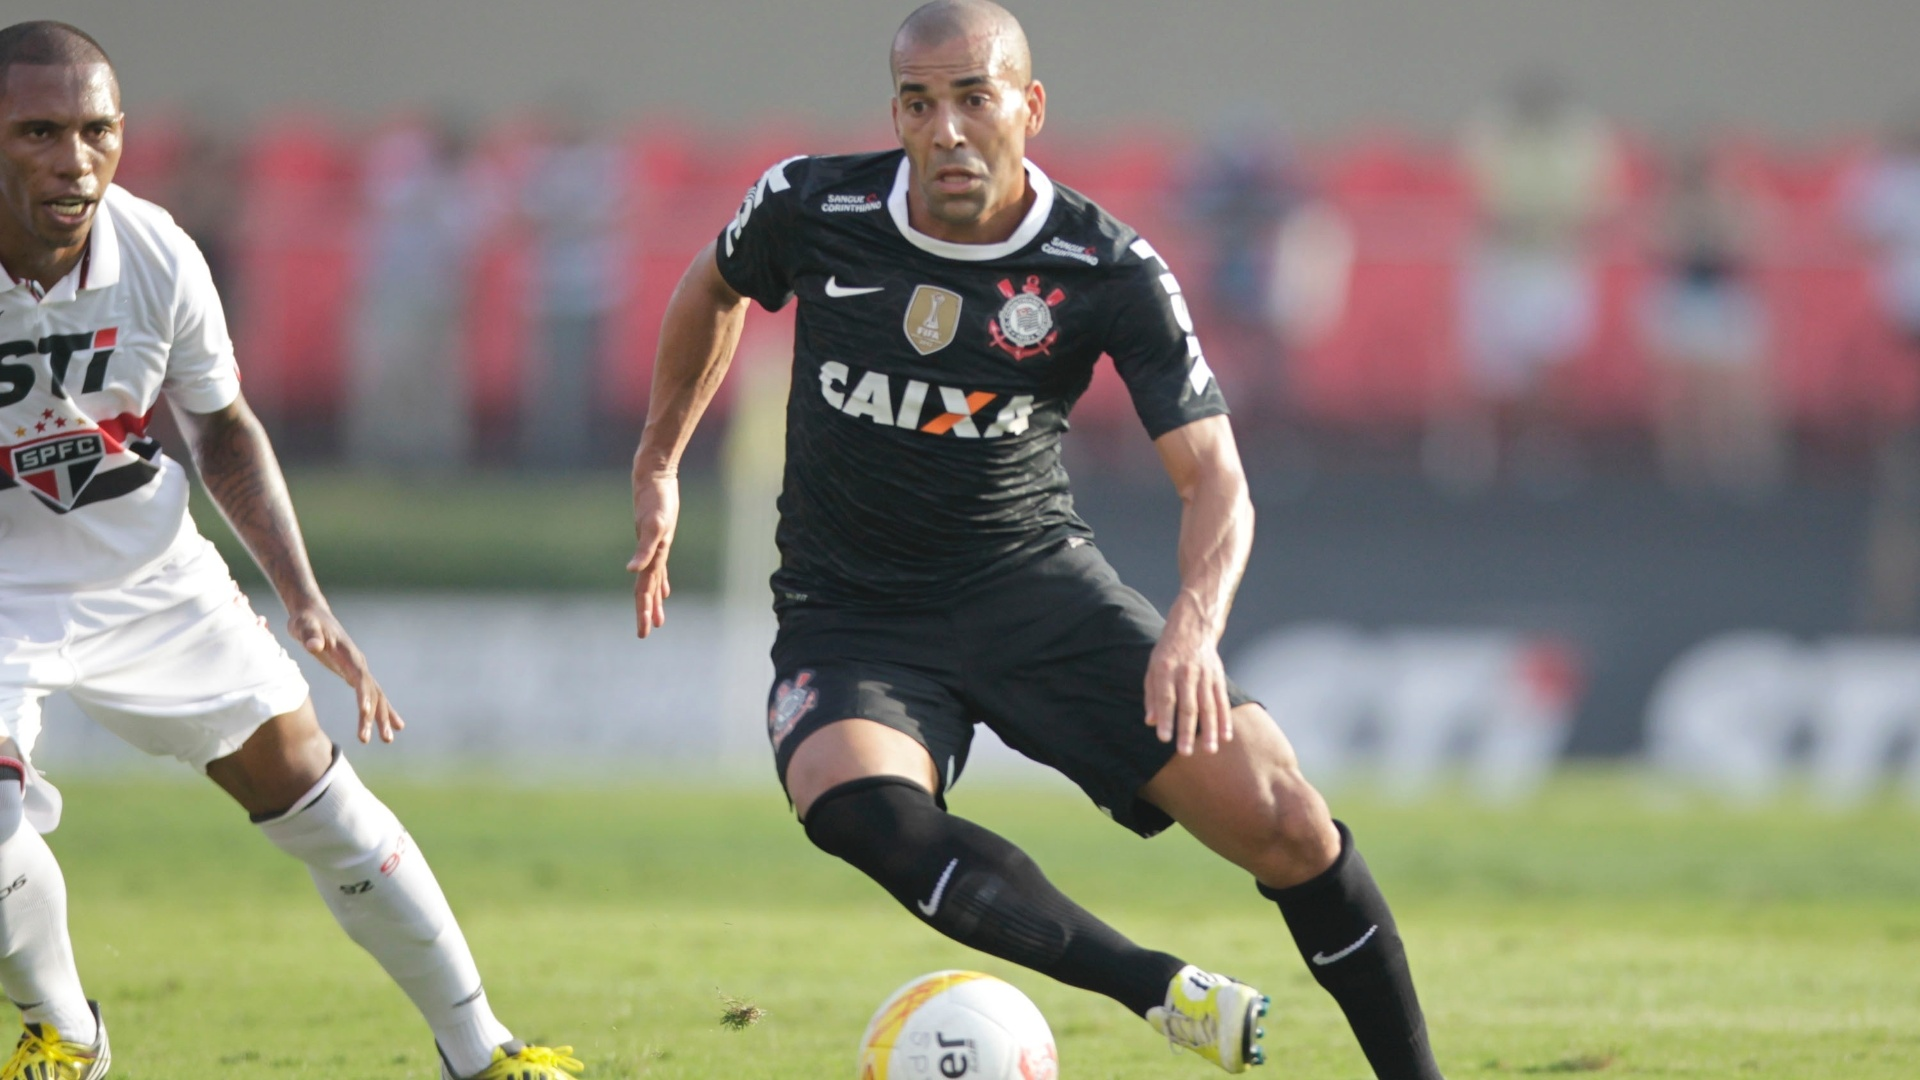 31.mar.2013 - Emerson Sheik domina a bola durante o clssico do Corinthians contra o So Paulo no Morumbi